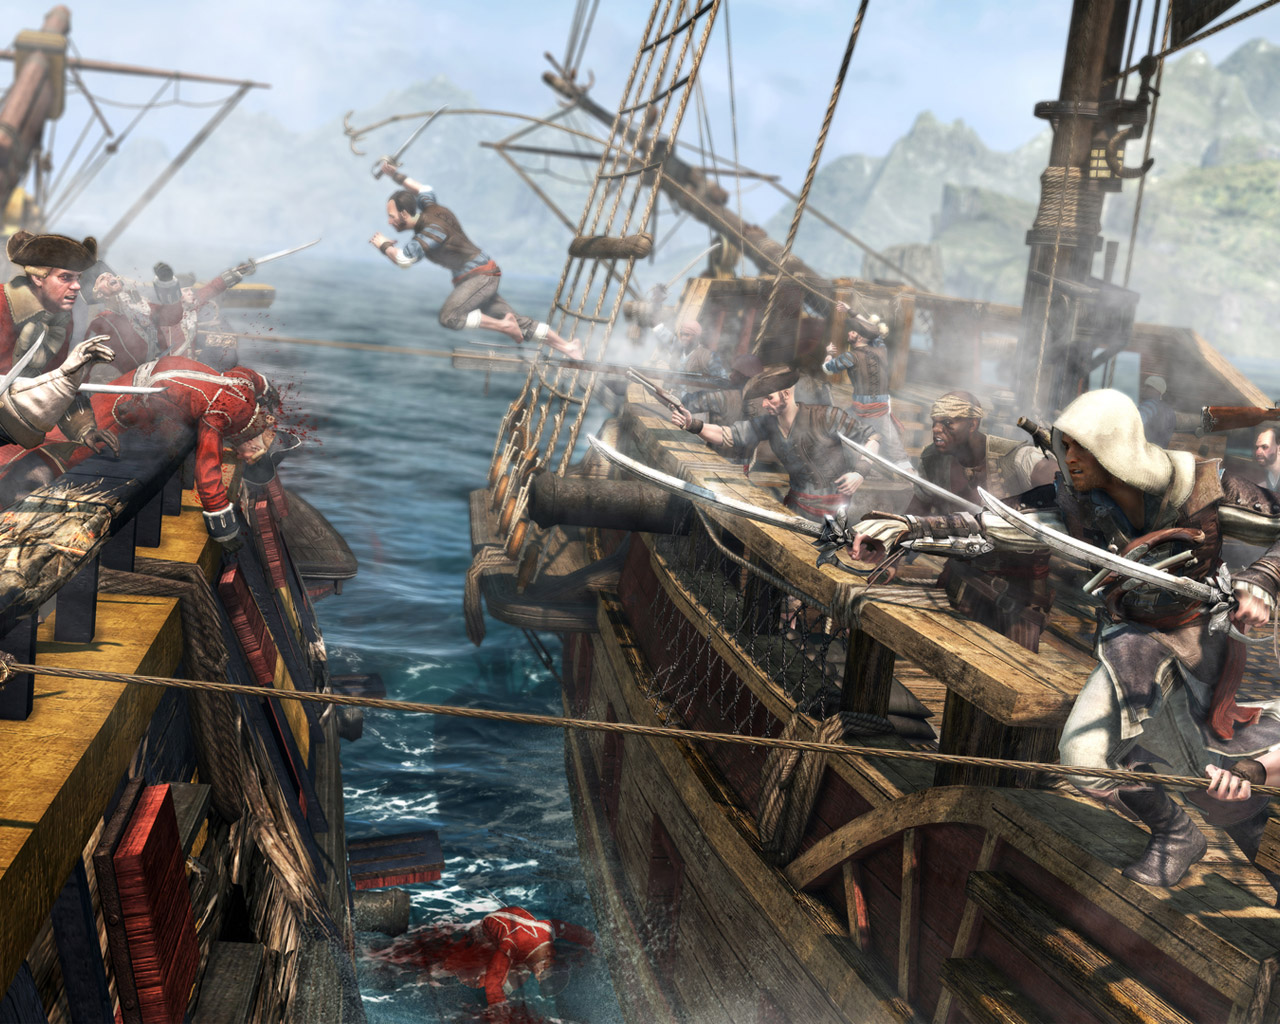 Free Assassin's Creed IV: Black Flag Wallpaper in 1280x1024